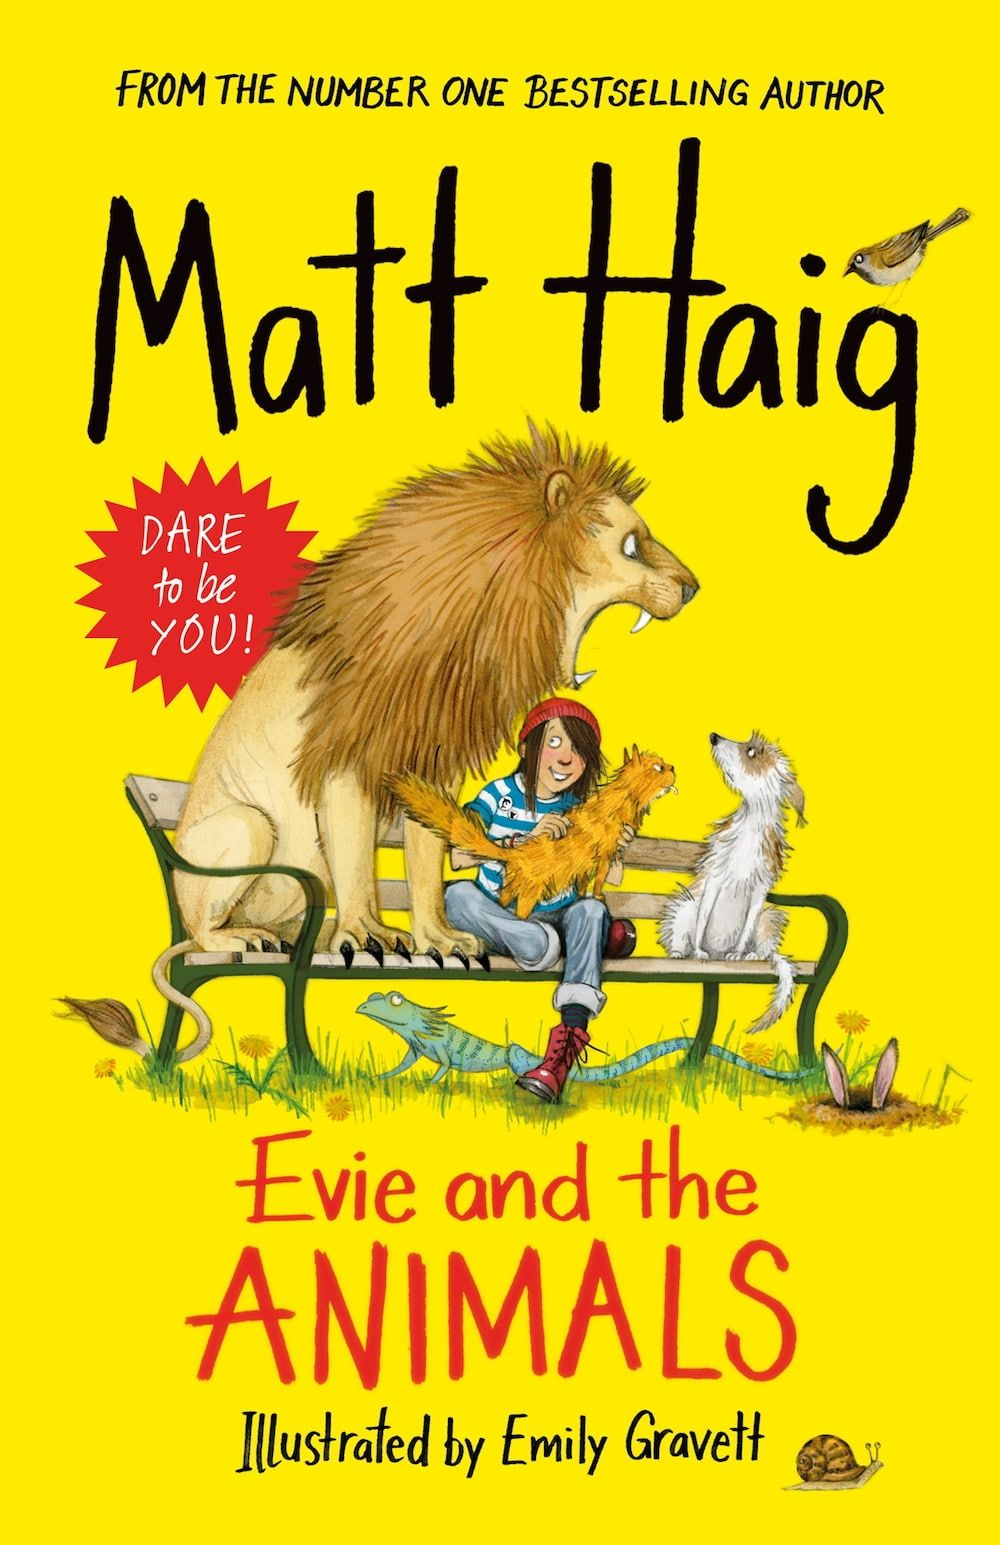 Evie and the-Animals book cover